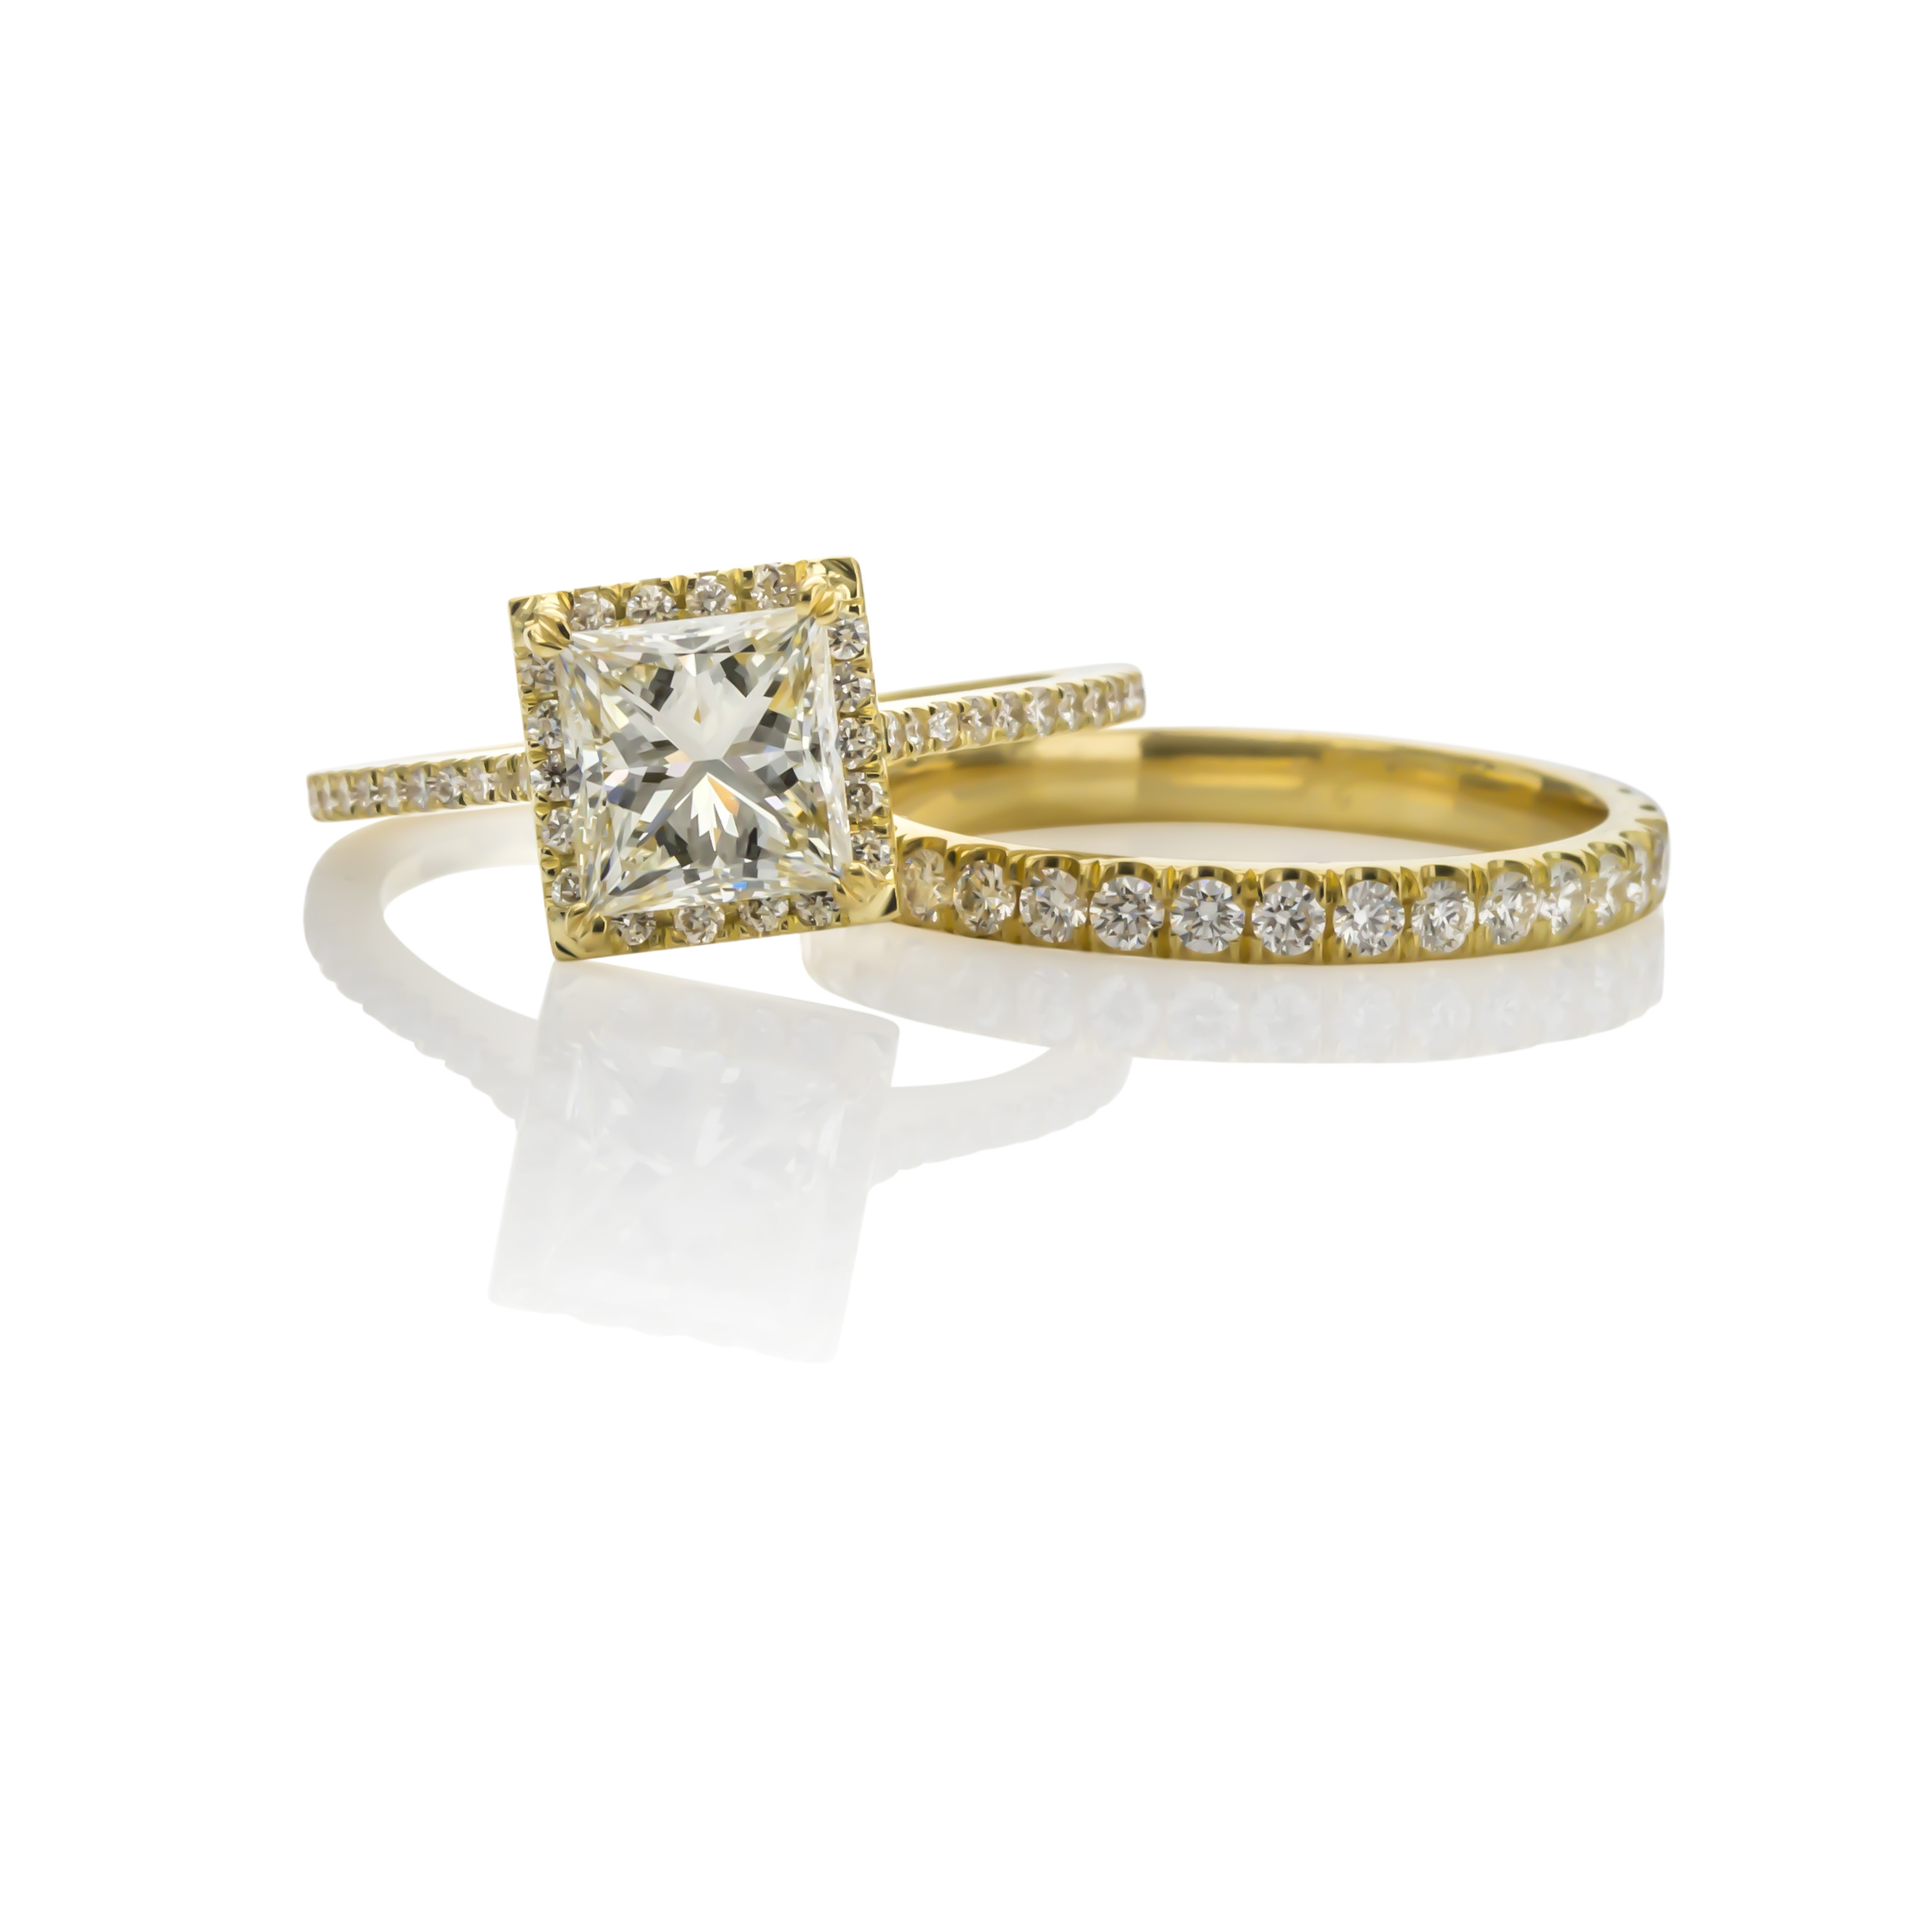 CUSTOM 18K YELLOW GOLD PRINCESS CUT DIAMOND ENGAGEMENT RING AND MATCHING WEDDING BAND